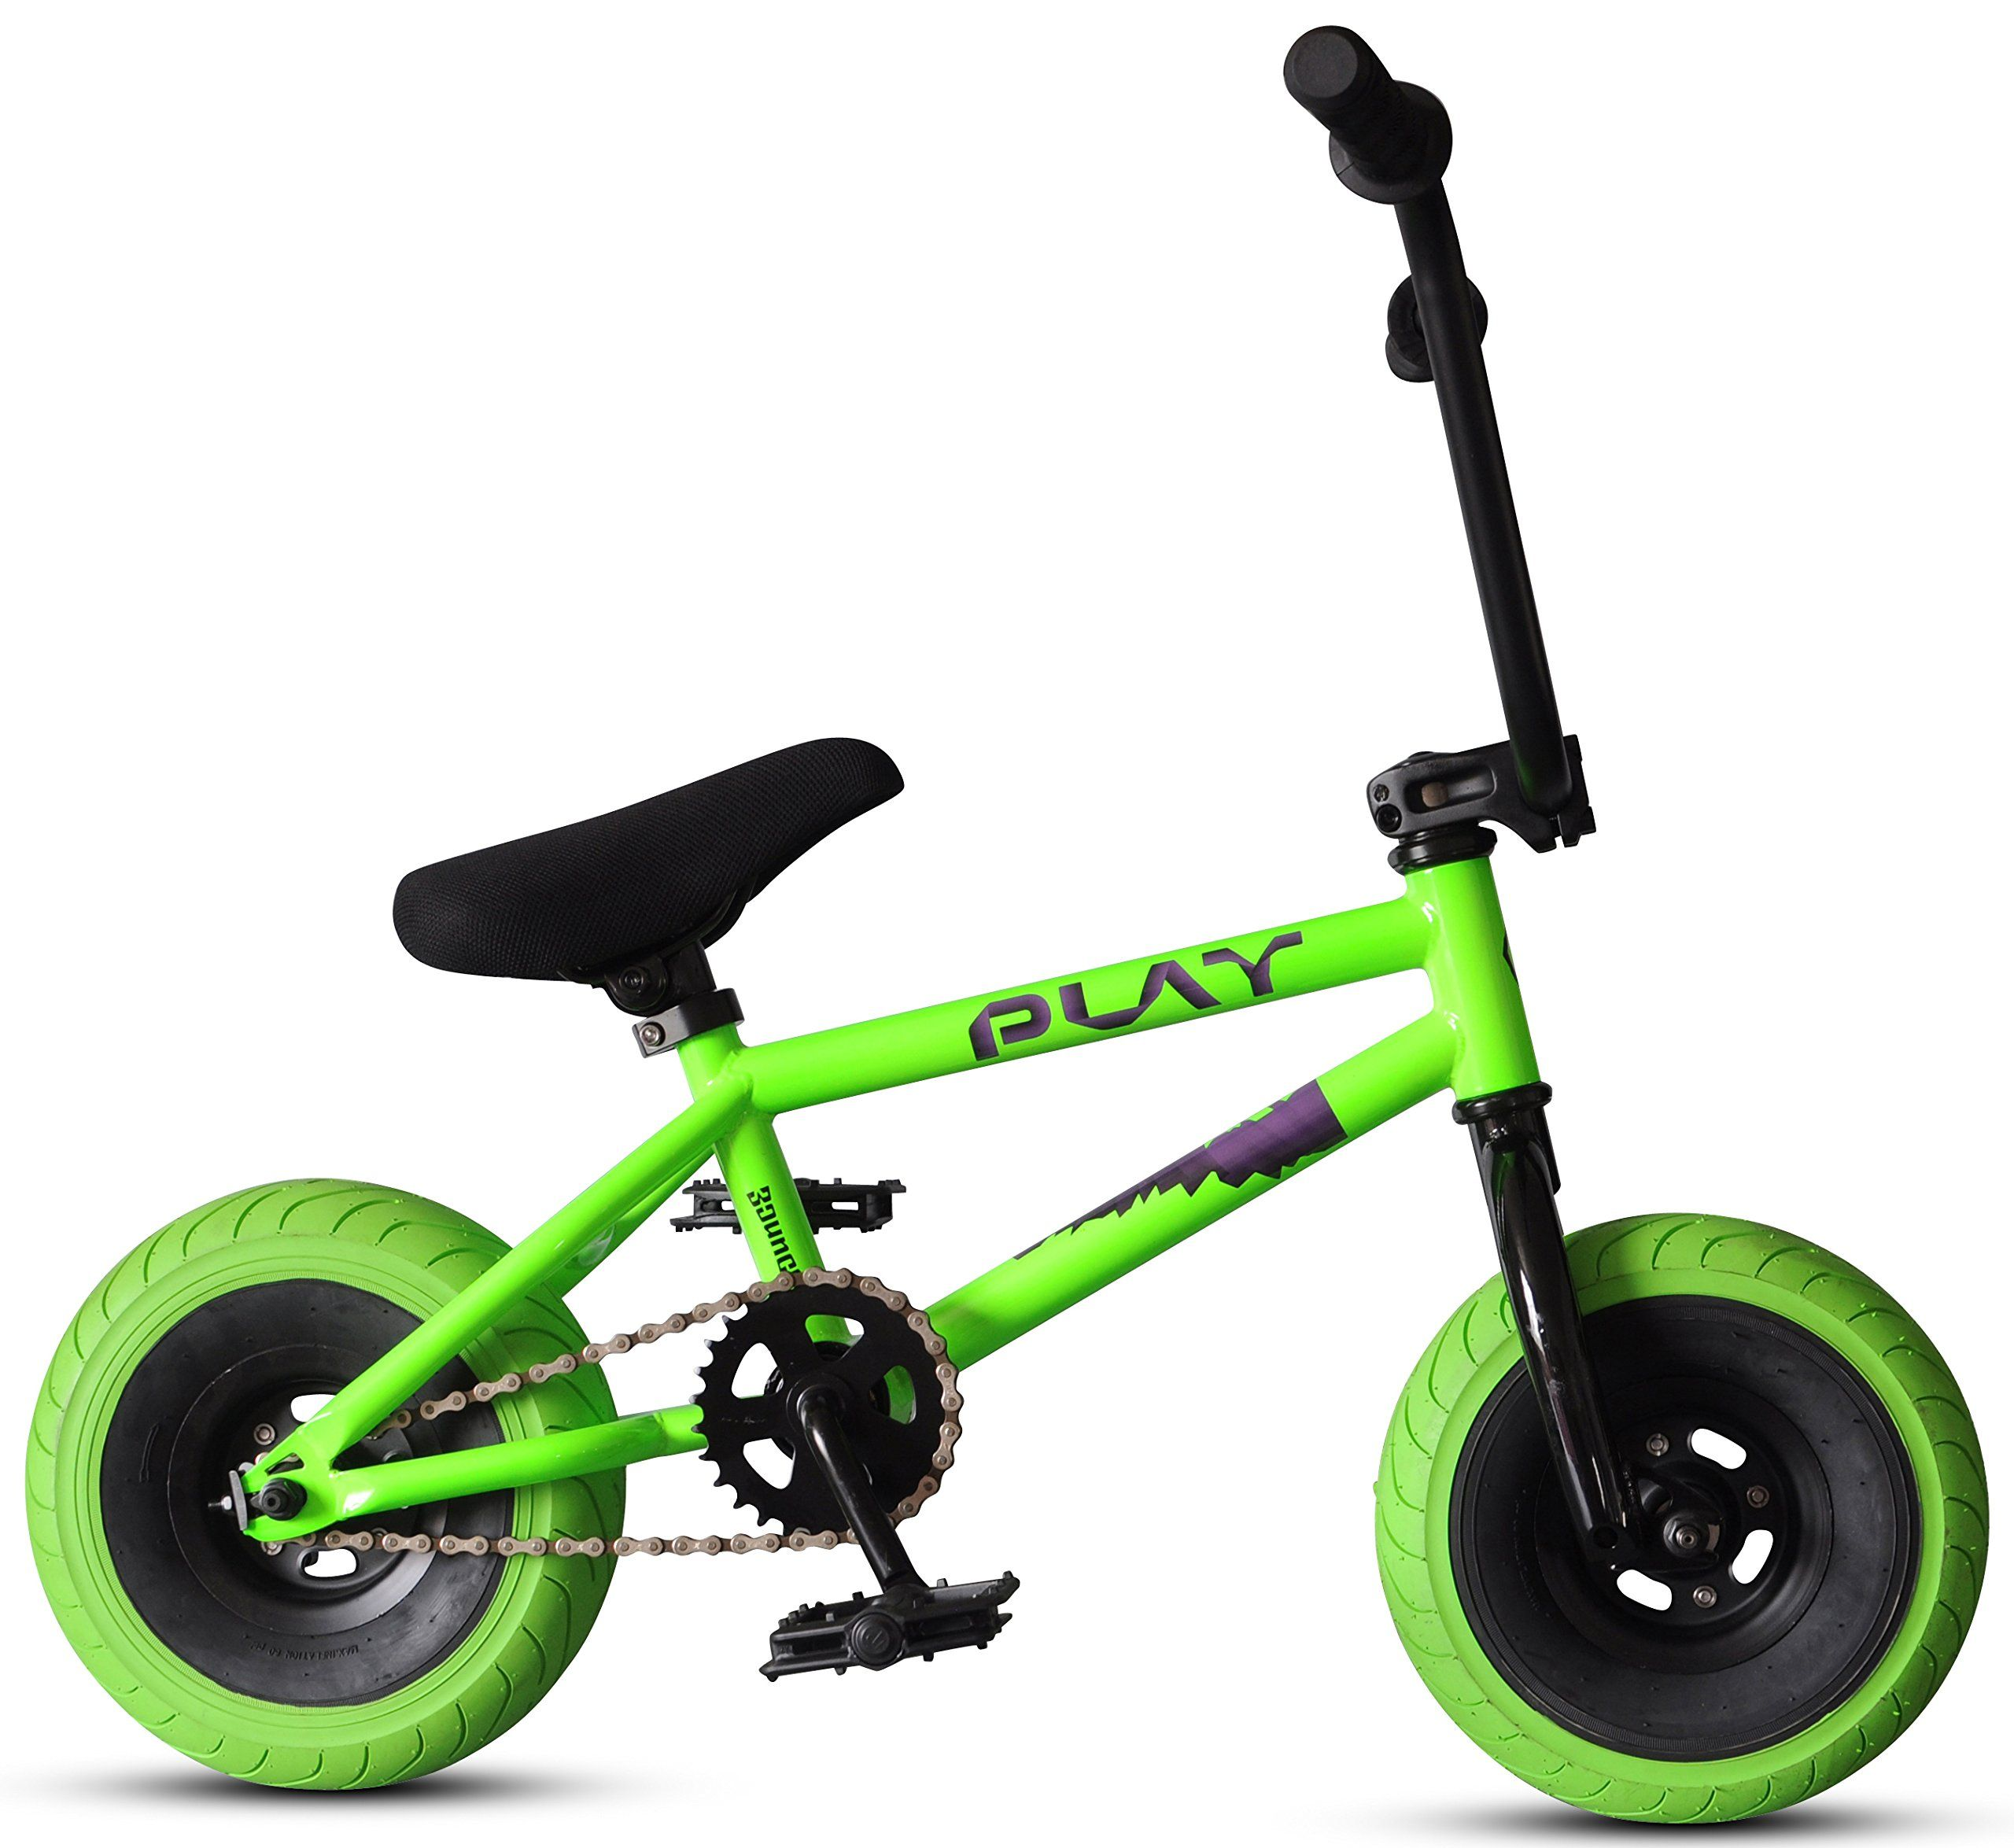 Bounce Play Limited Edition Mini Bmx Bike You Can Get More Details By Clicking On The Image This Is An Affiliate Link Bmx Bikes Bmx Bikes For Sale Bmx